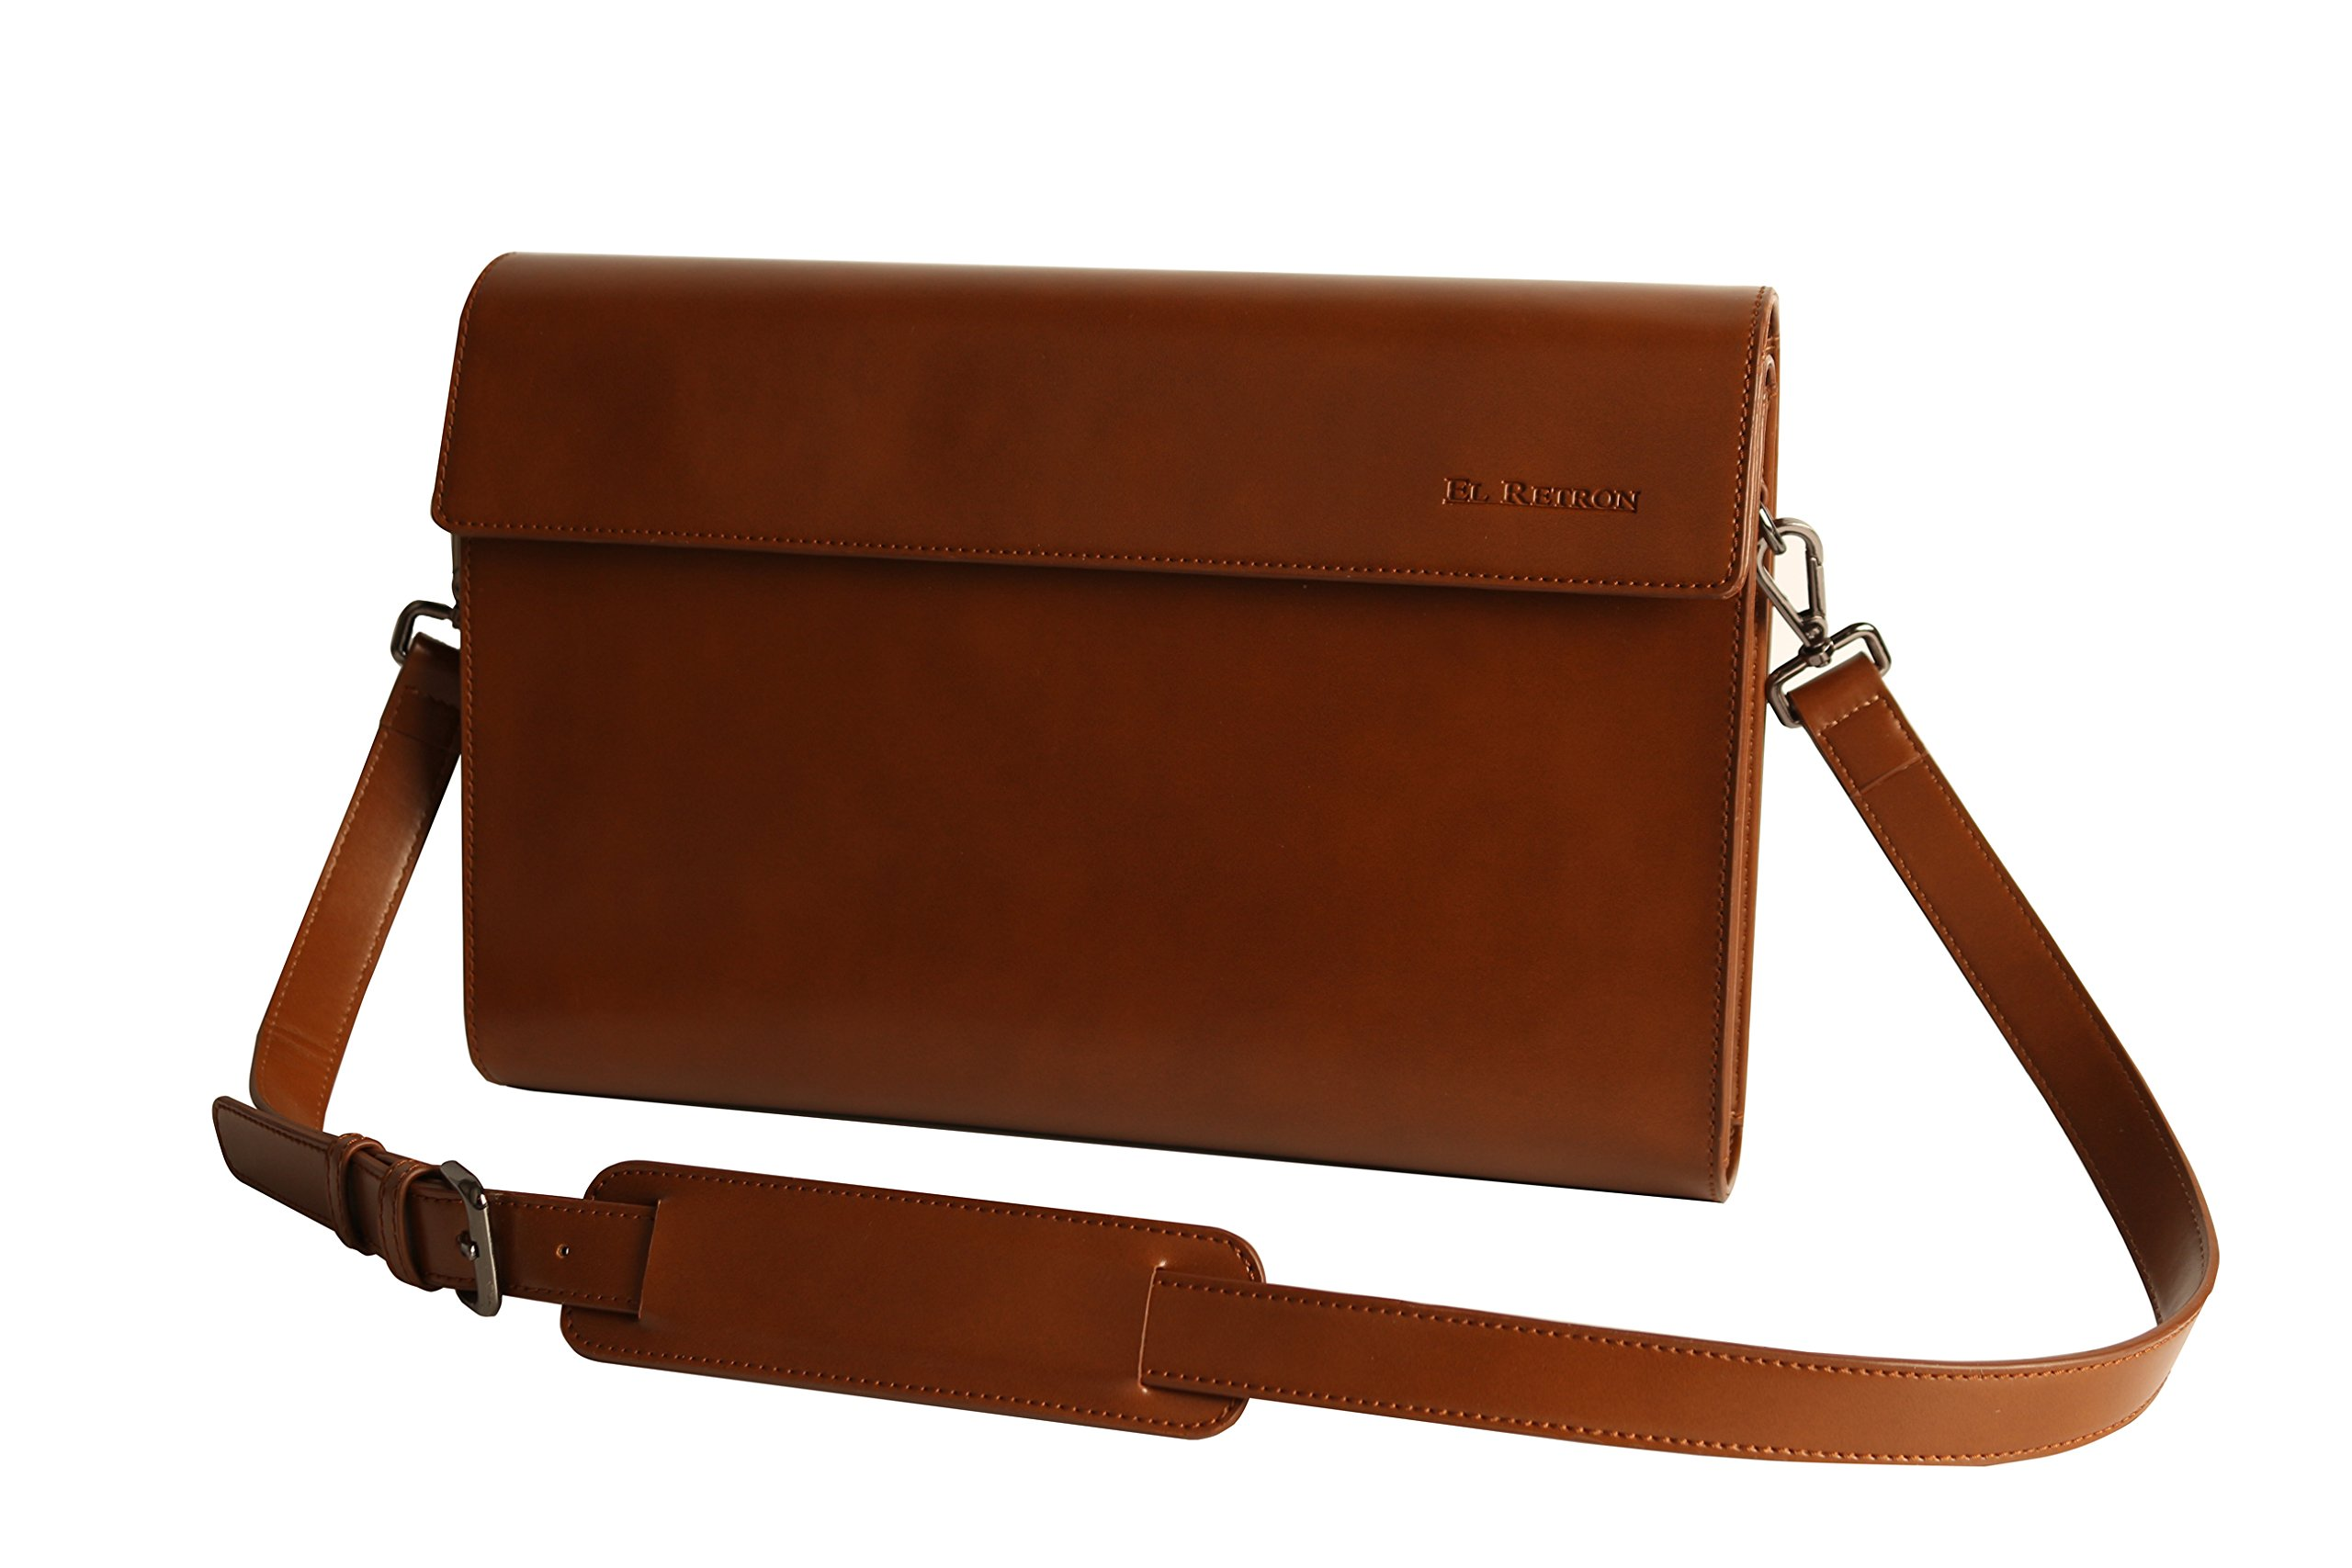 Penna Tablet Pouch Sleeve Bag Penna Keyboard Accessory Pocket ~12 inch, Vintage Leather Style(PVC)(Brown)